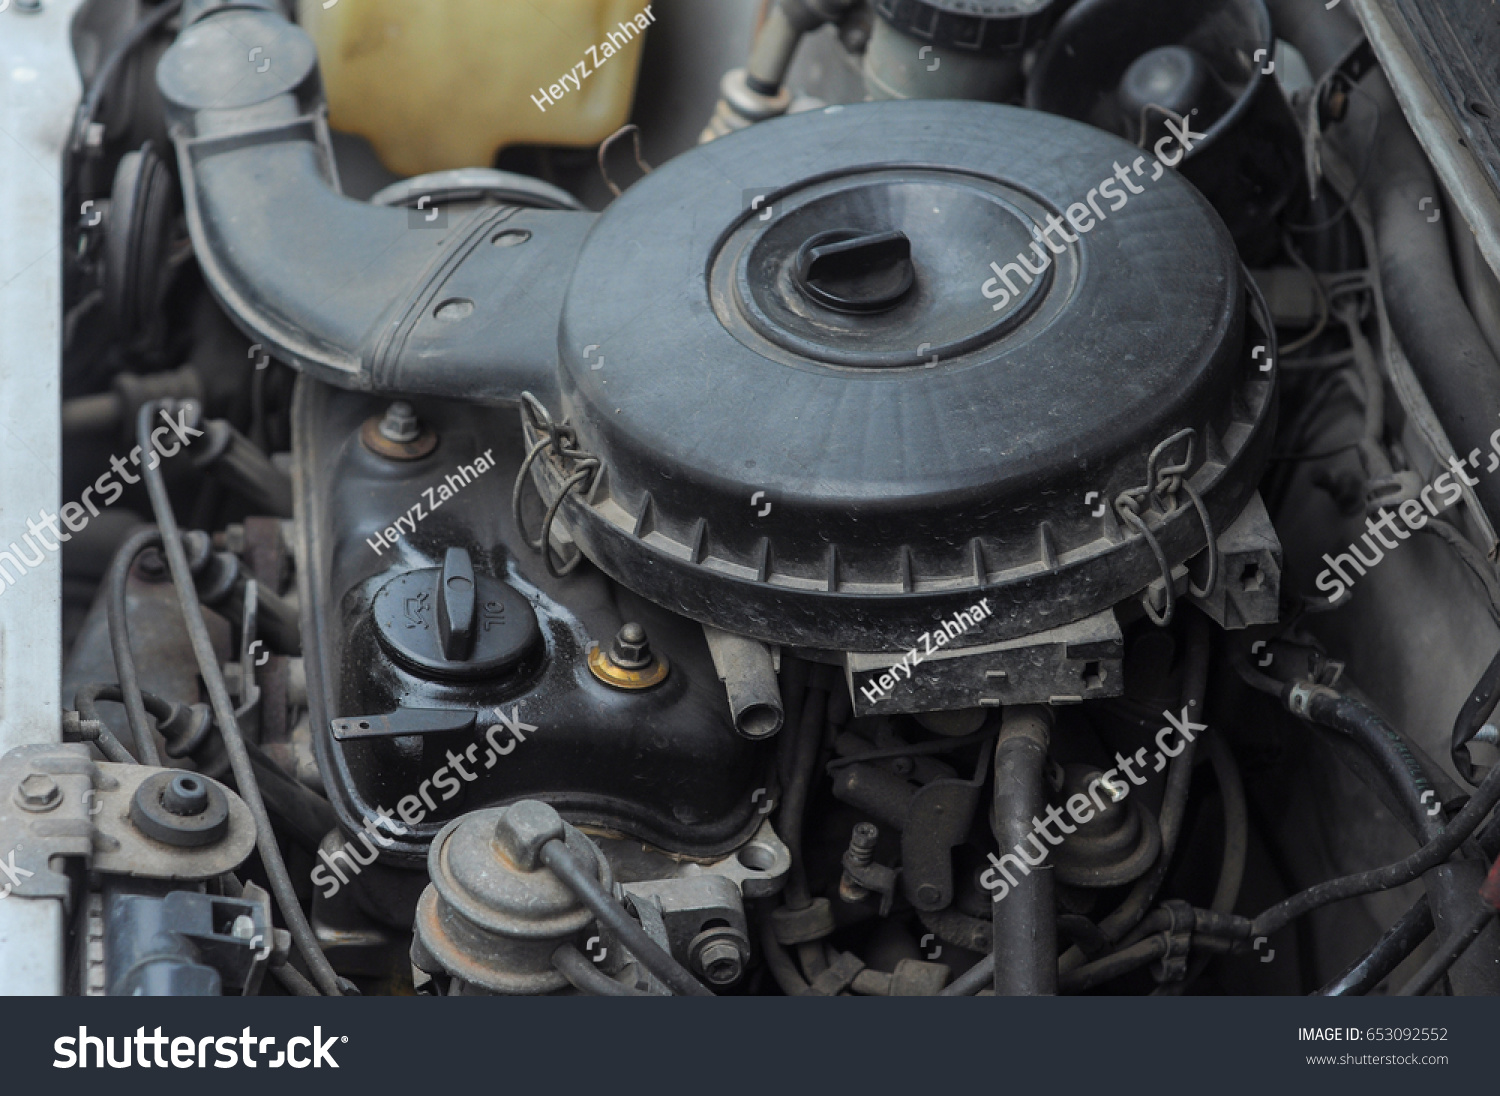 Old Car Engine Stock Photo (100% Legal Protection) 653092552 ...